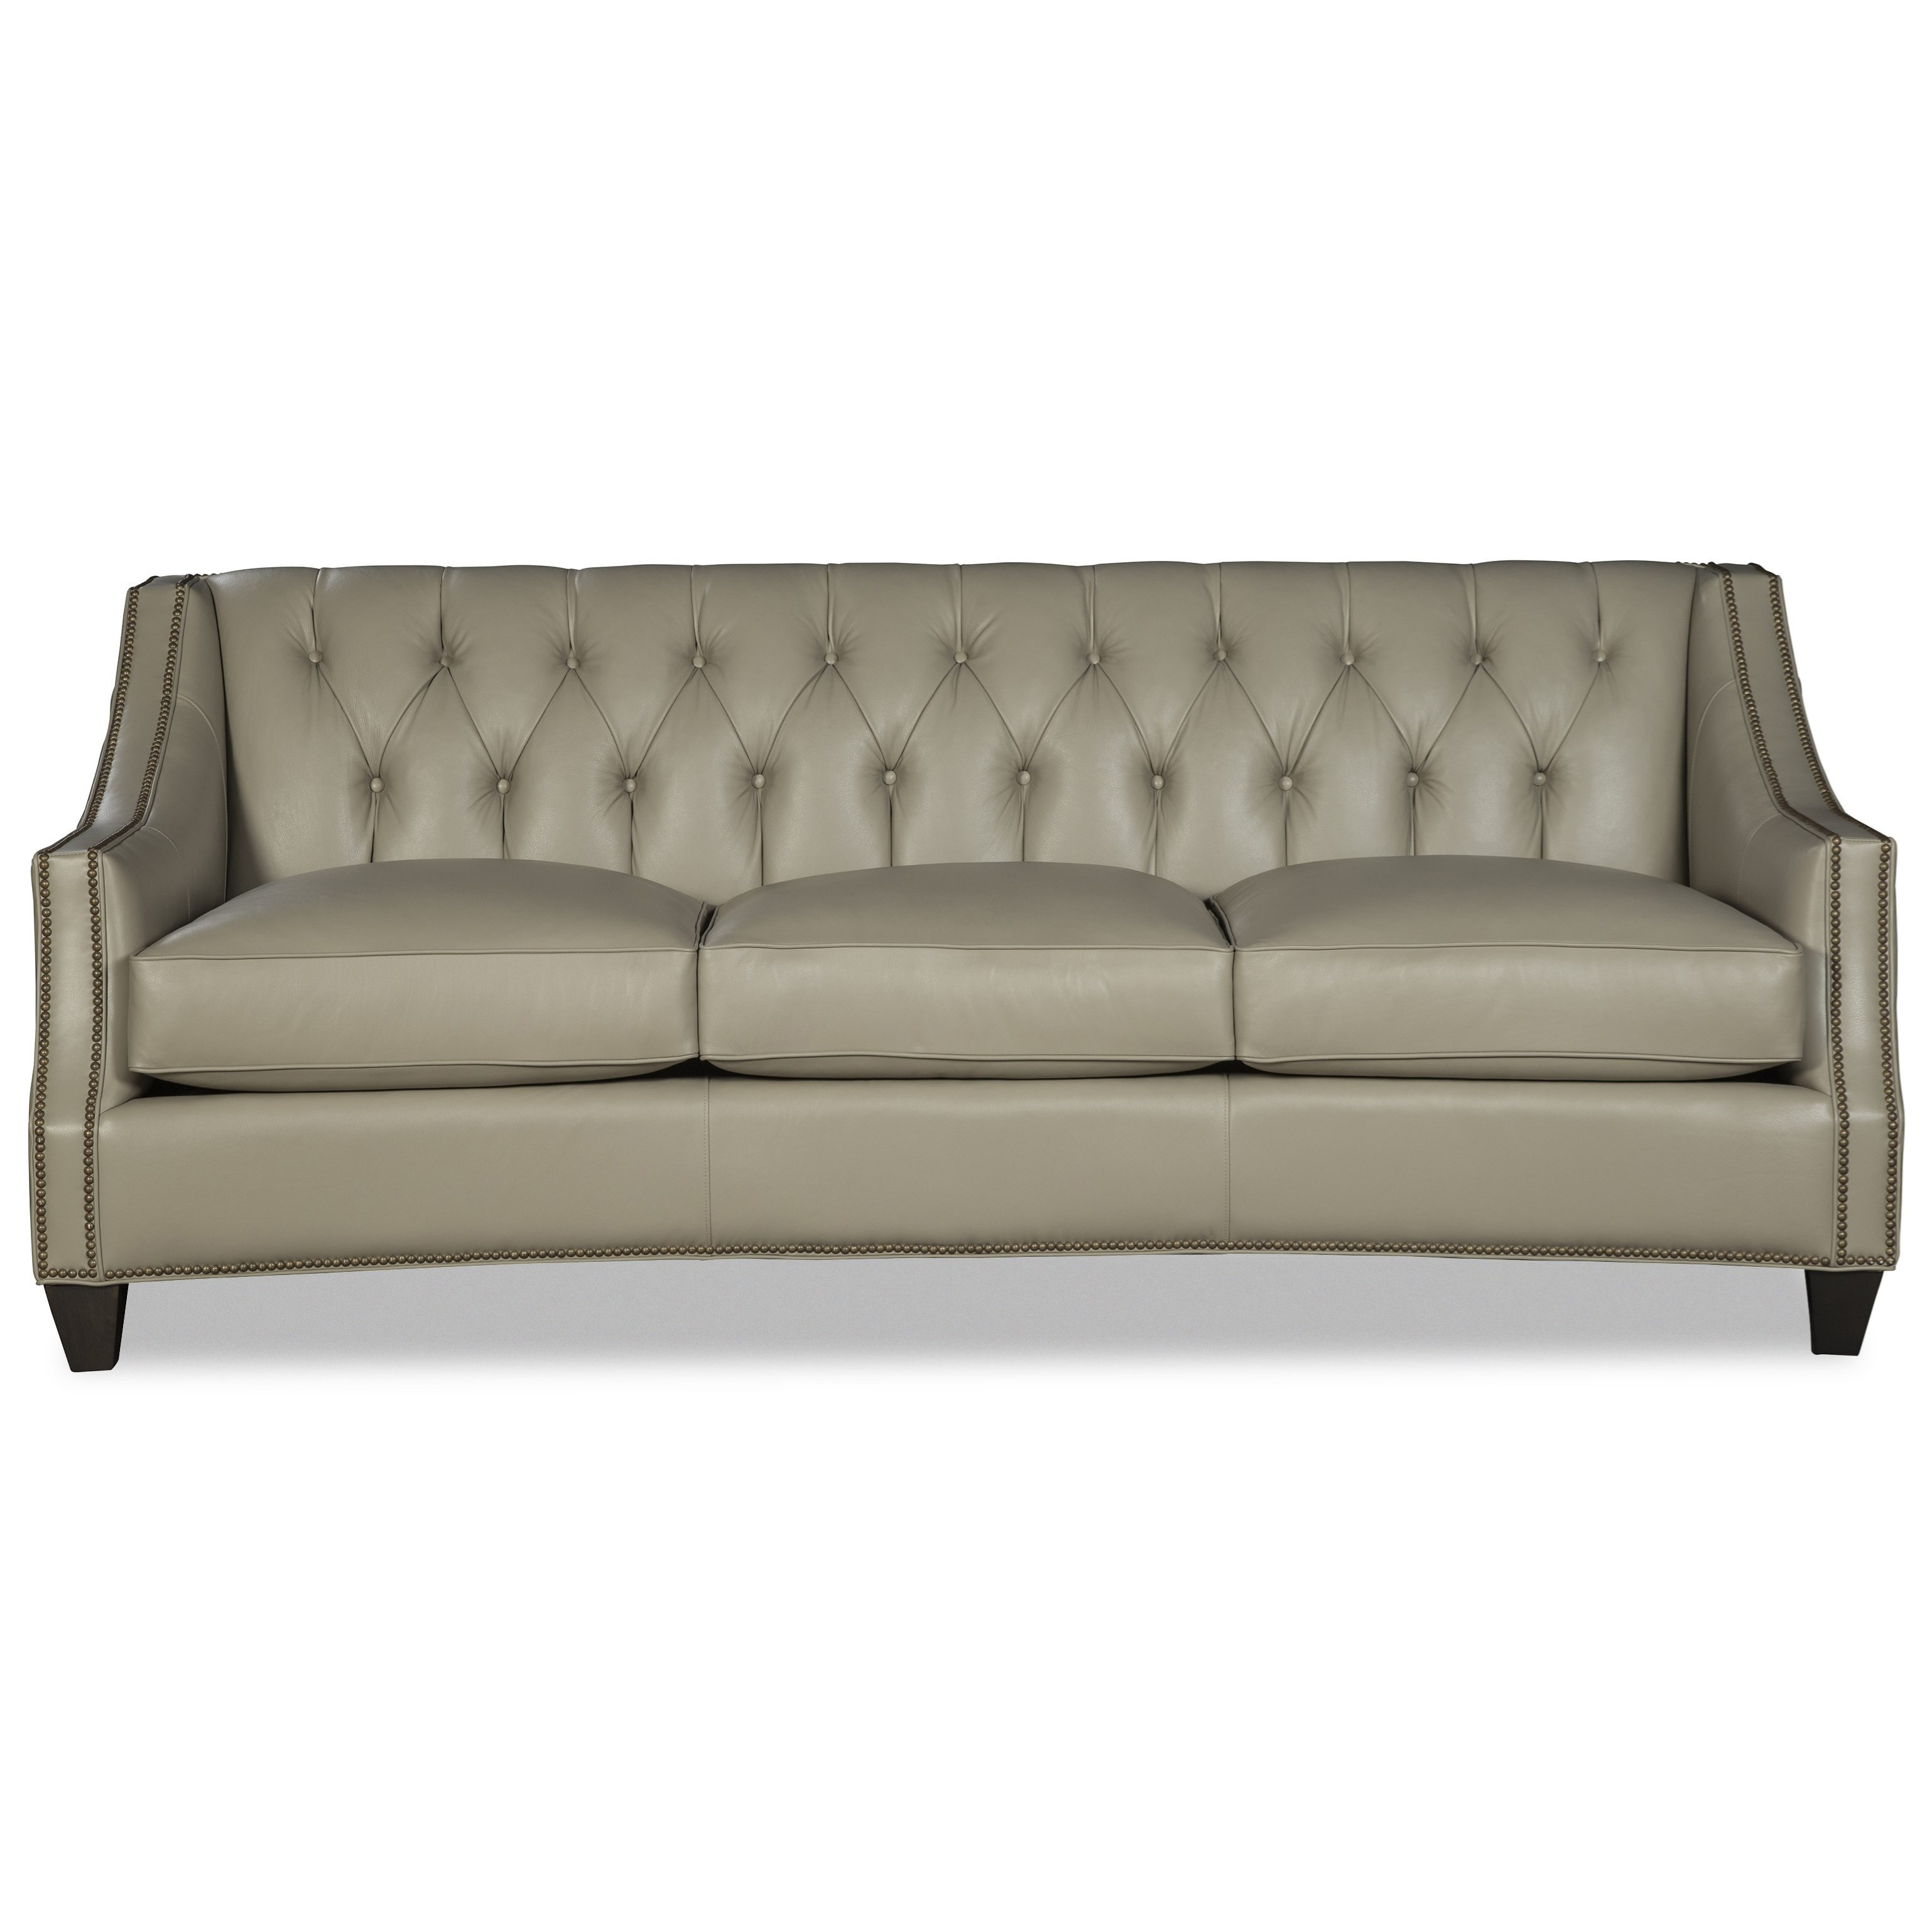 L794150 Sofa by Craftmaster at Baer's Furniture